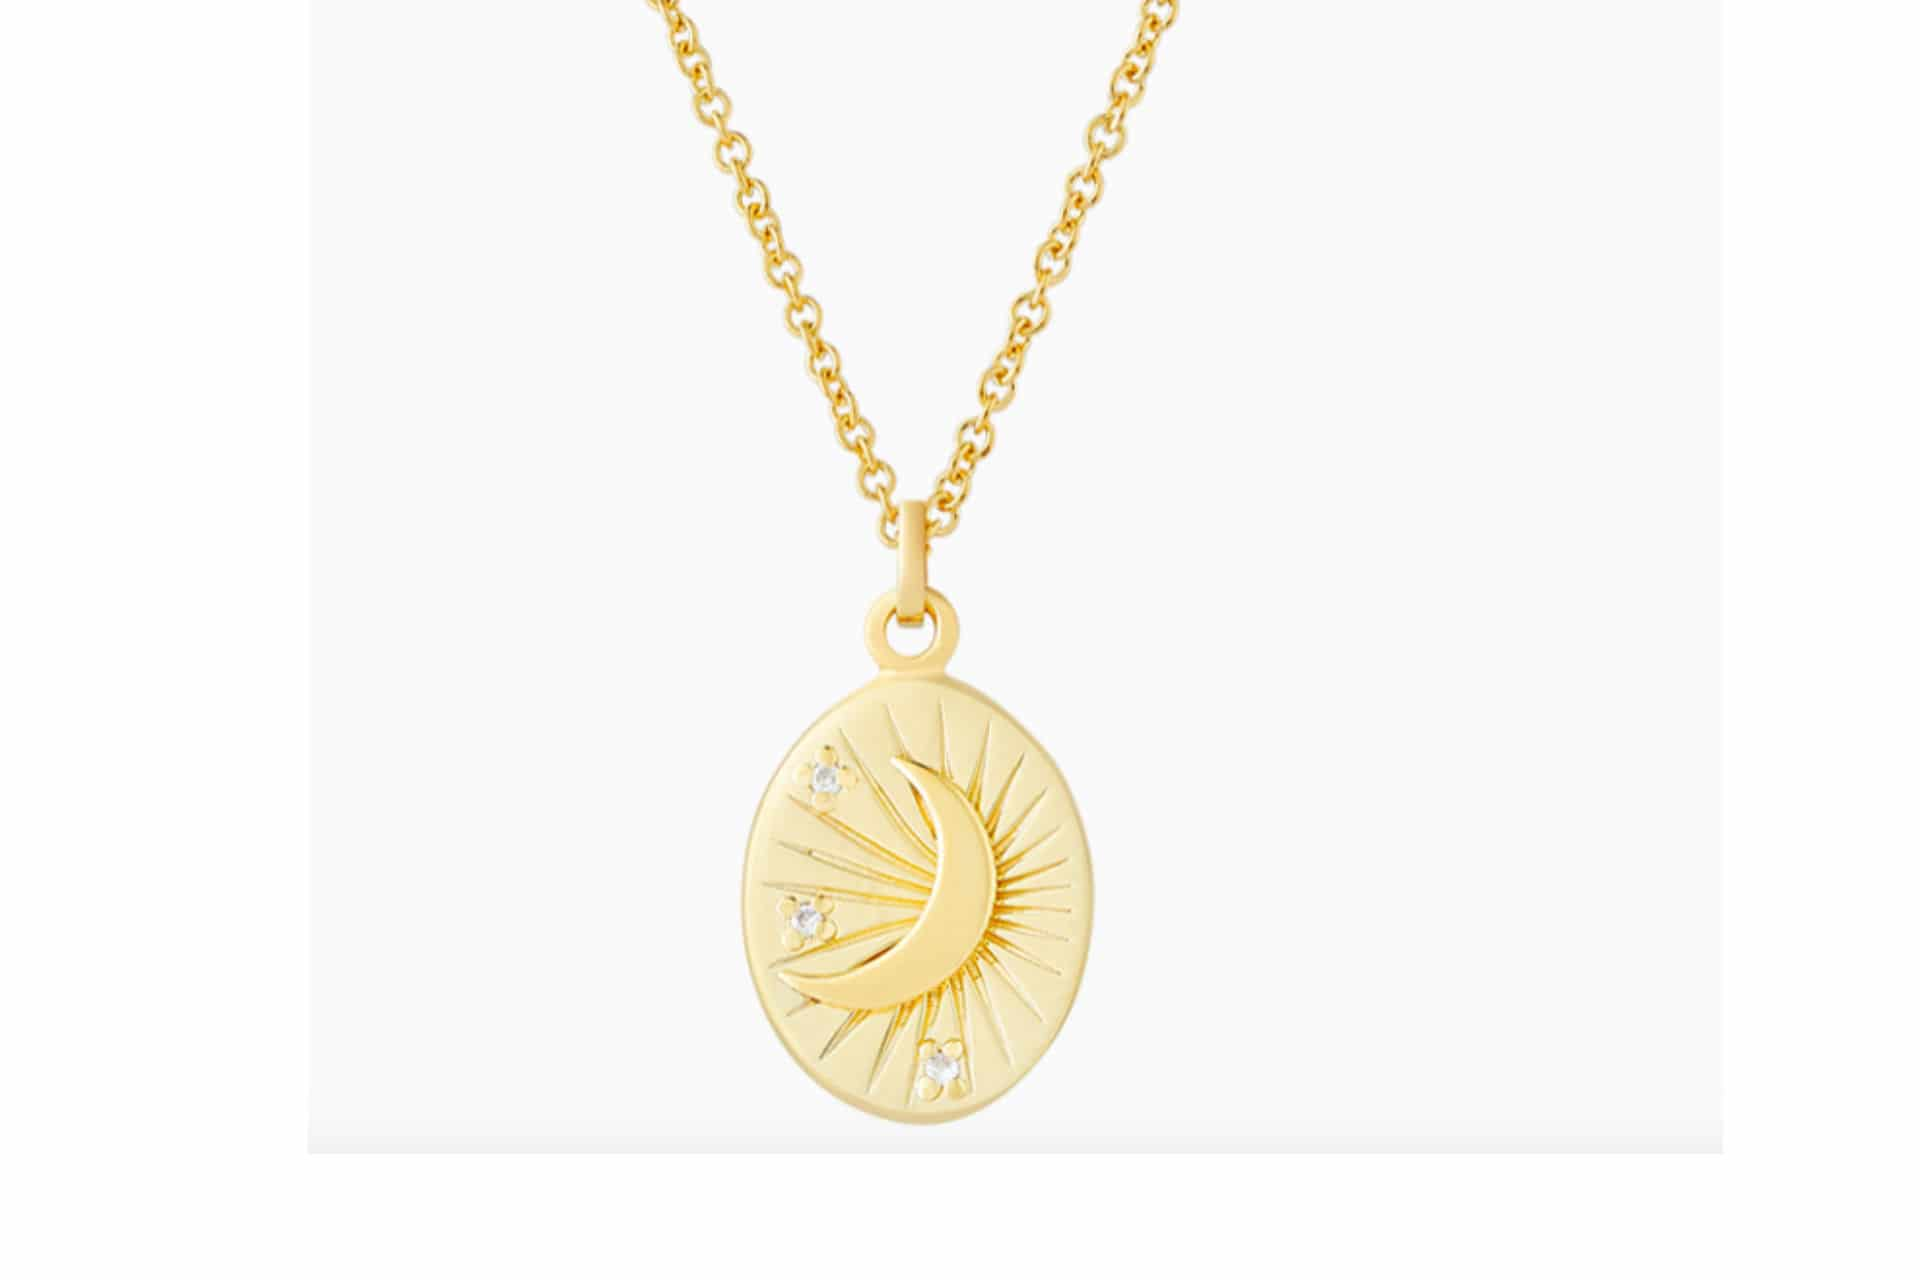 gold necklace with a moon